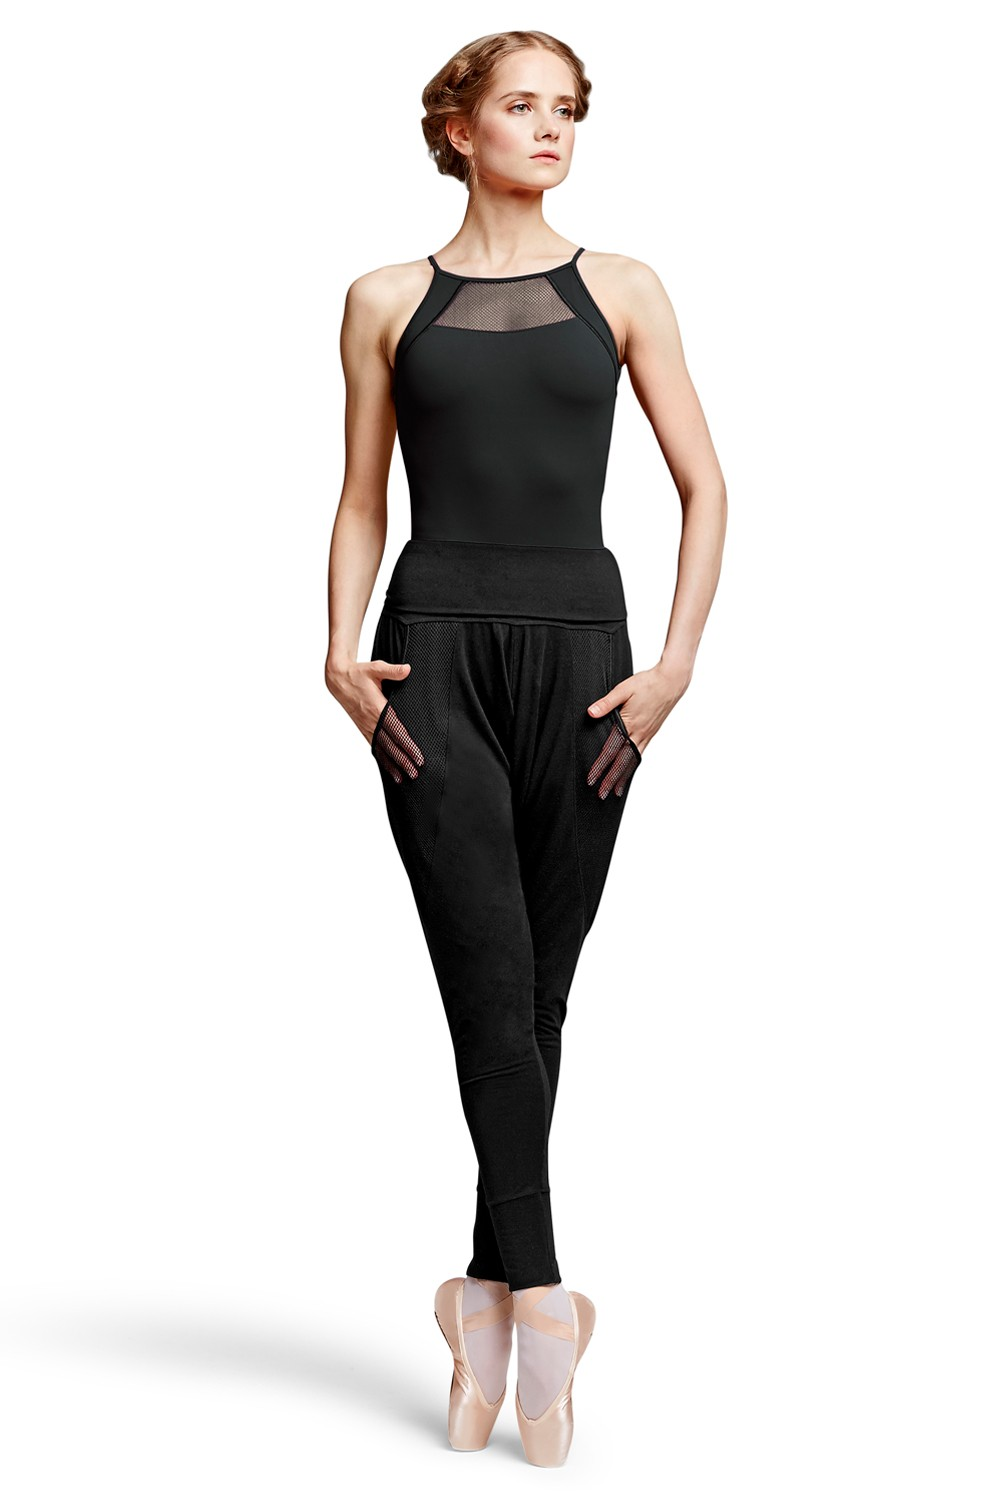 Iolite  Women's Dance Pants